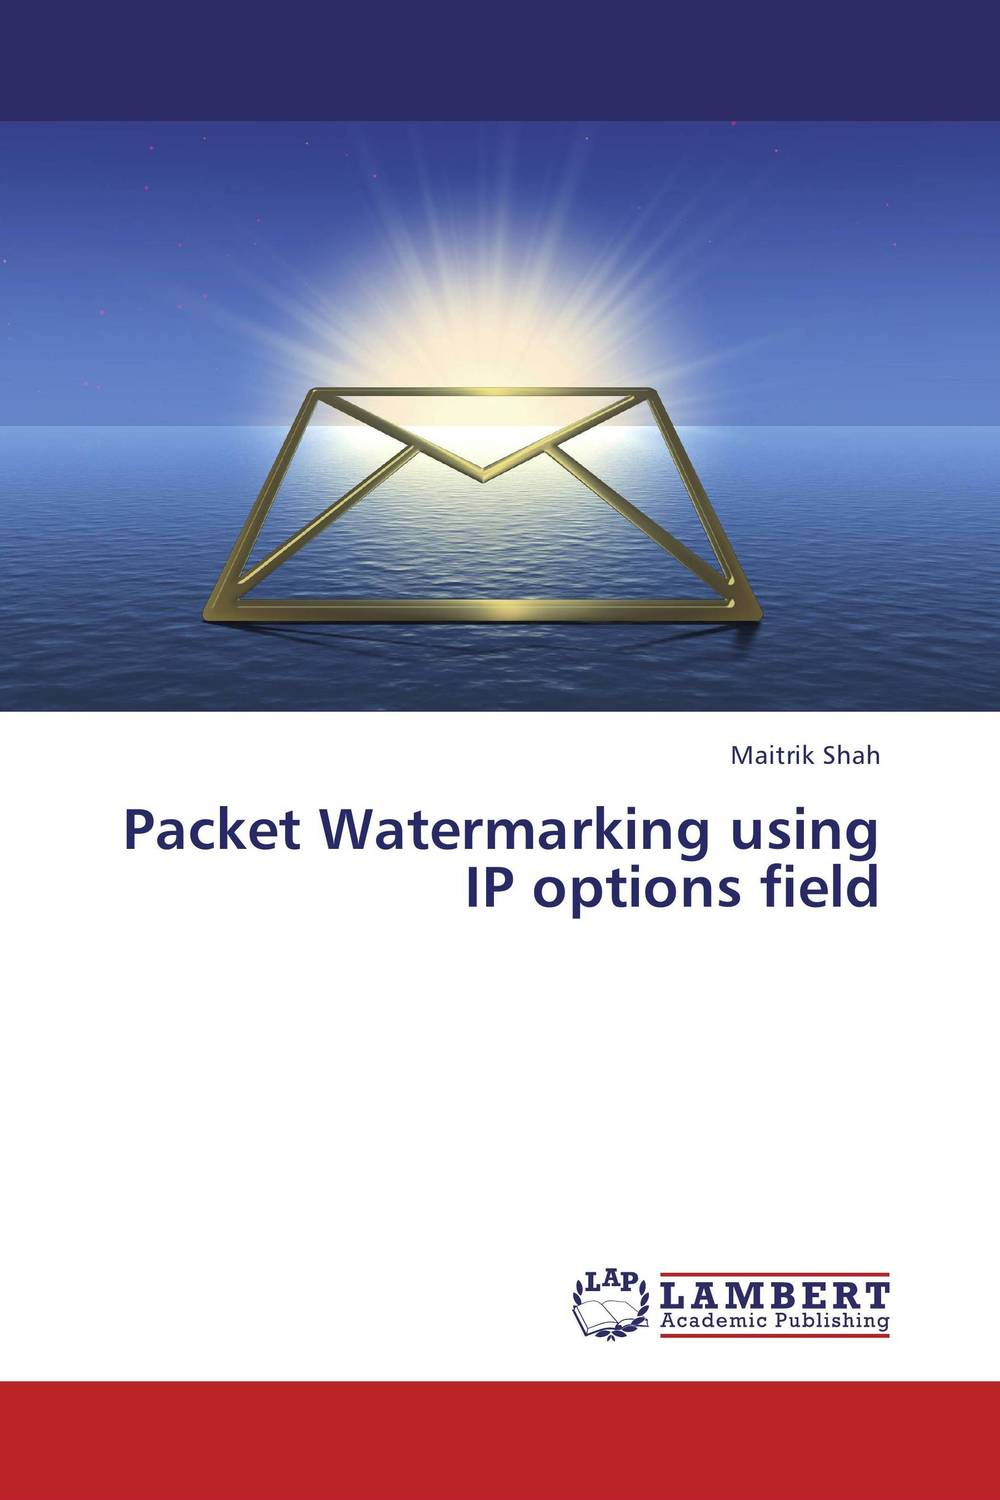 Packet Watermarking using IP options field ноутбук acer extensa ex2511 541p nx ef6er 007 intel core i5 5200u 2 2 ghz 4096mb 500gb dvd rw intel hd graphics wi fi bluetooth cam 15 6 1366x768 windows 10 64 bit